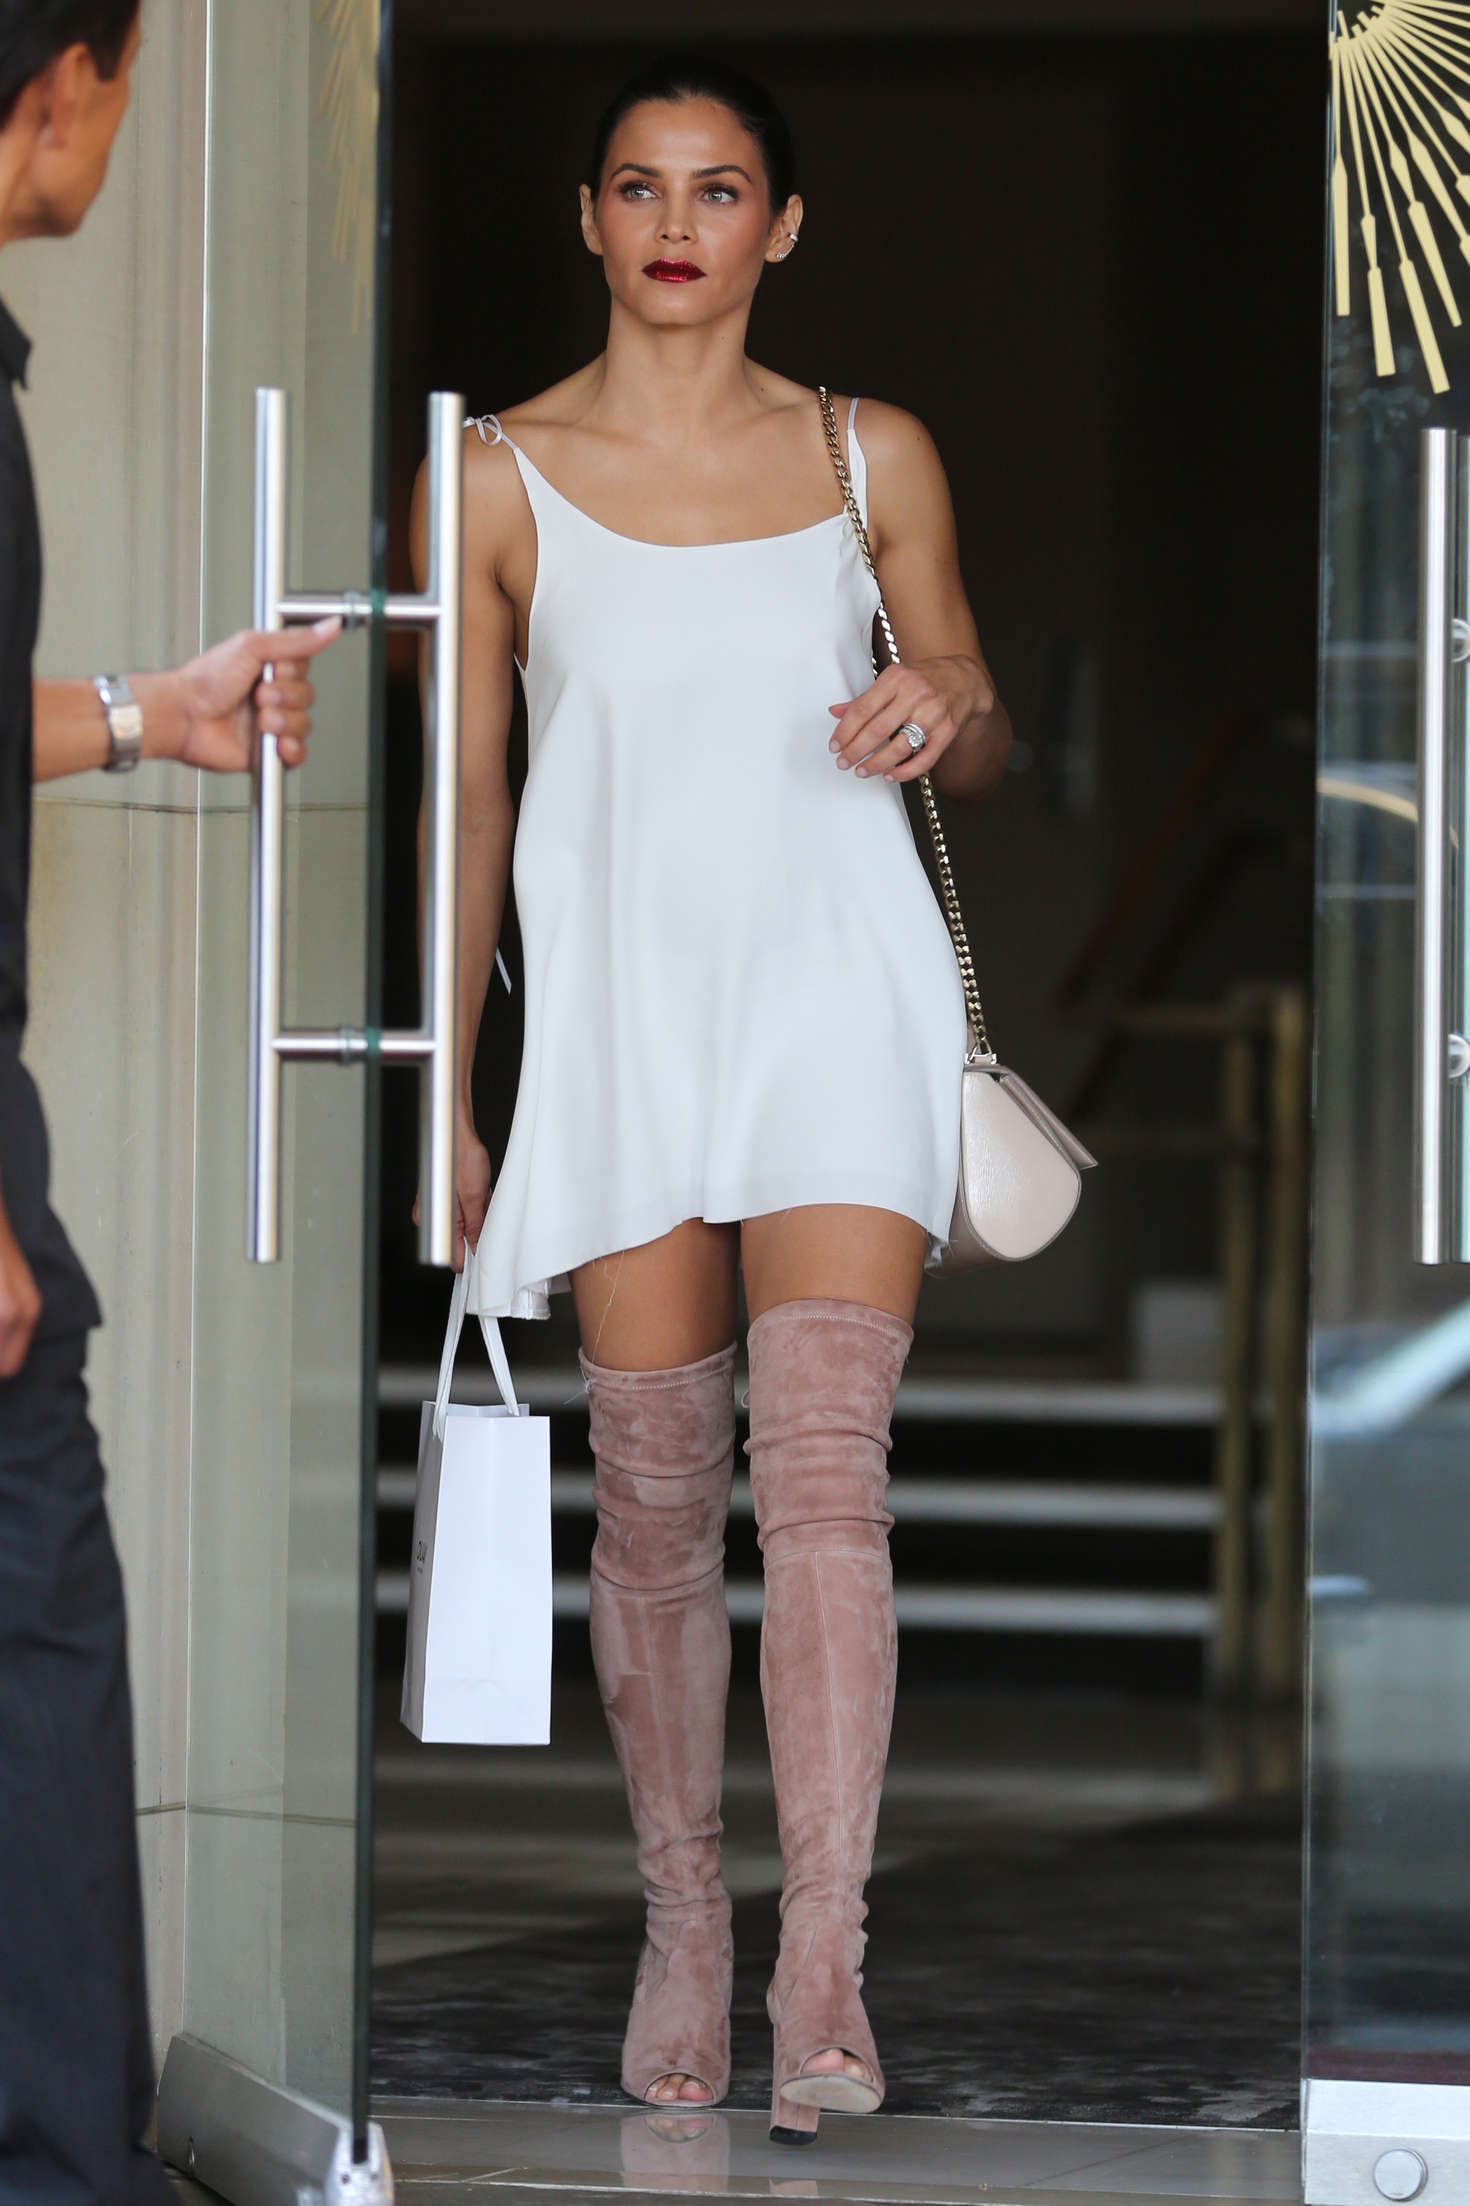 Jenna Dewan Tatum 2016 : Jenna Dewan Tatum in White Mini Dress -15